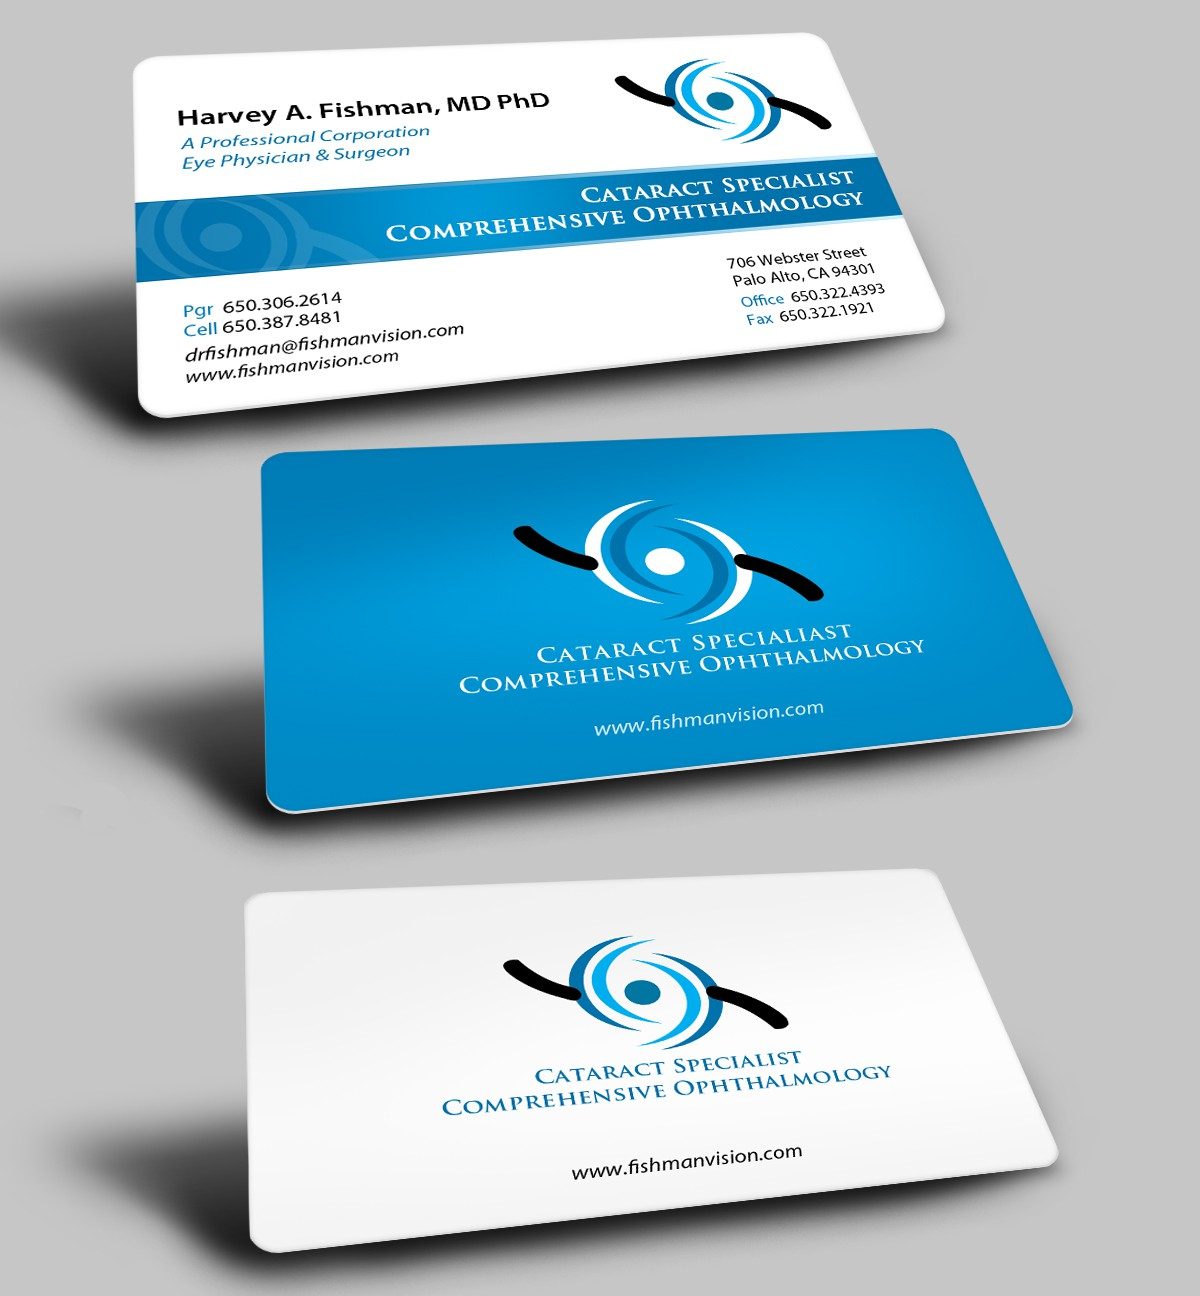 Help Harvey A. Fishman, MD, A Professional Corporation with new business card